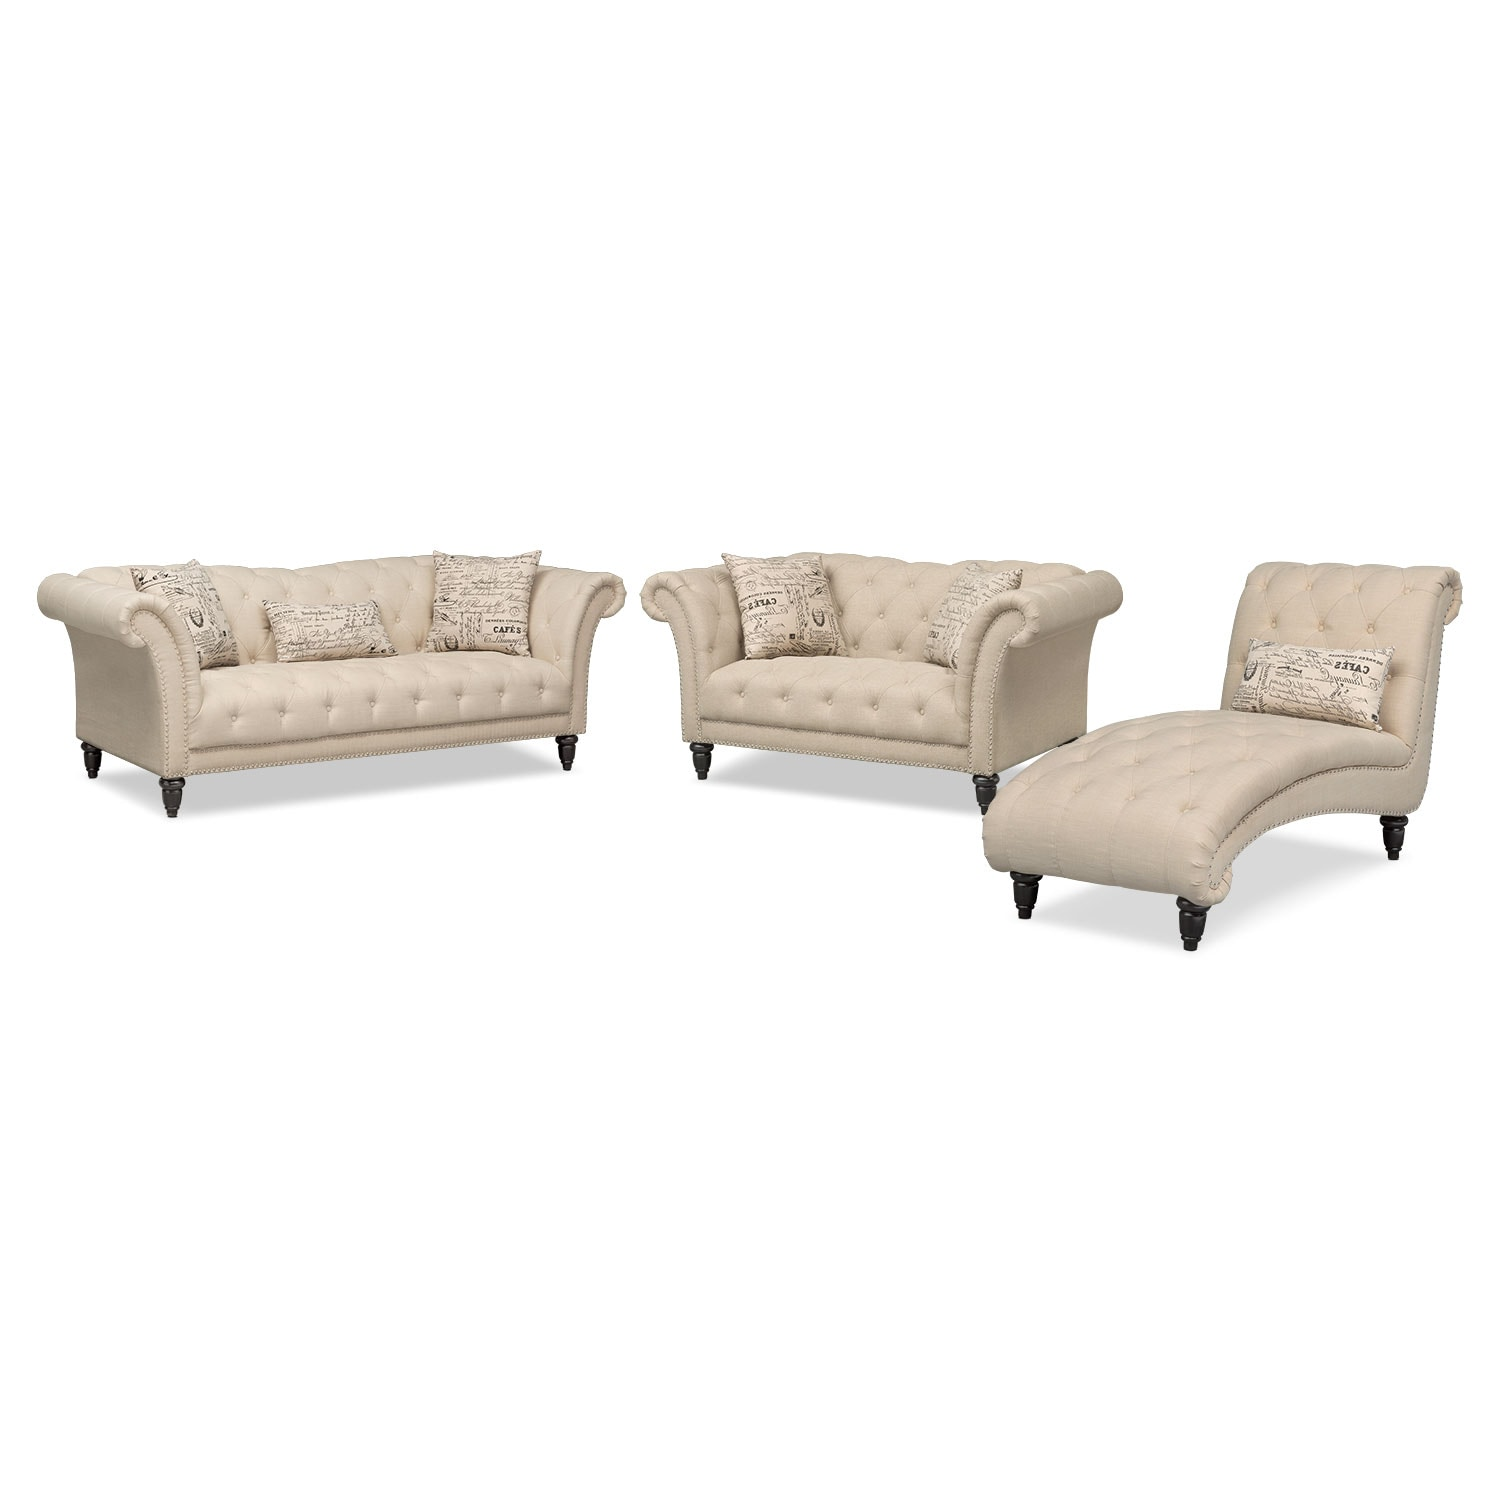 Marisol sofa loveseat and chaise set beige value city for Chaise lounge couch set